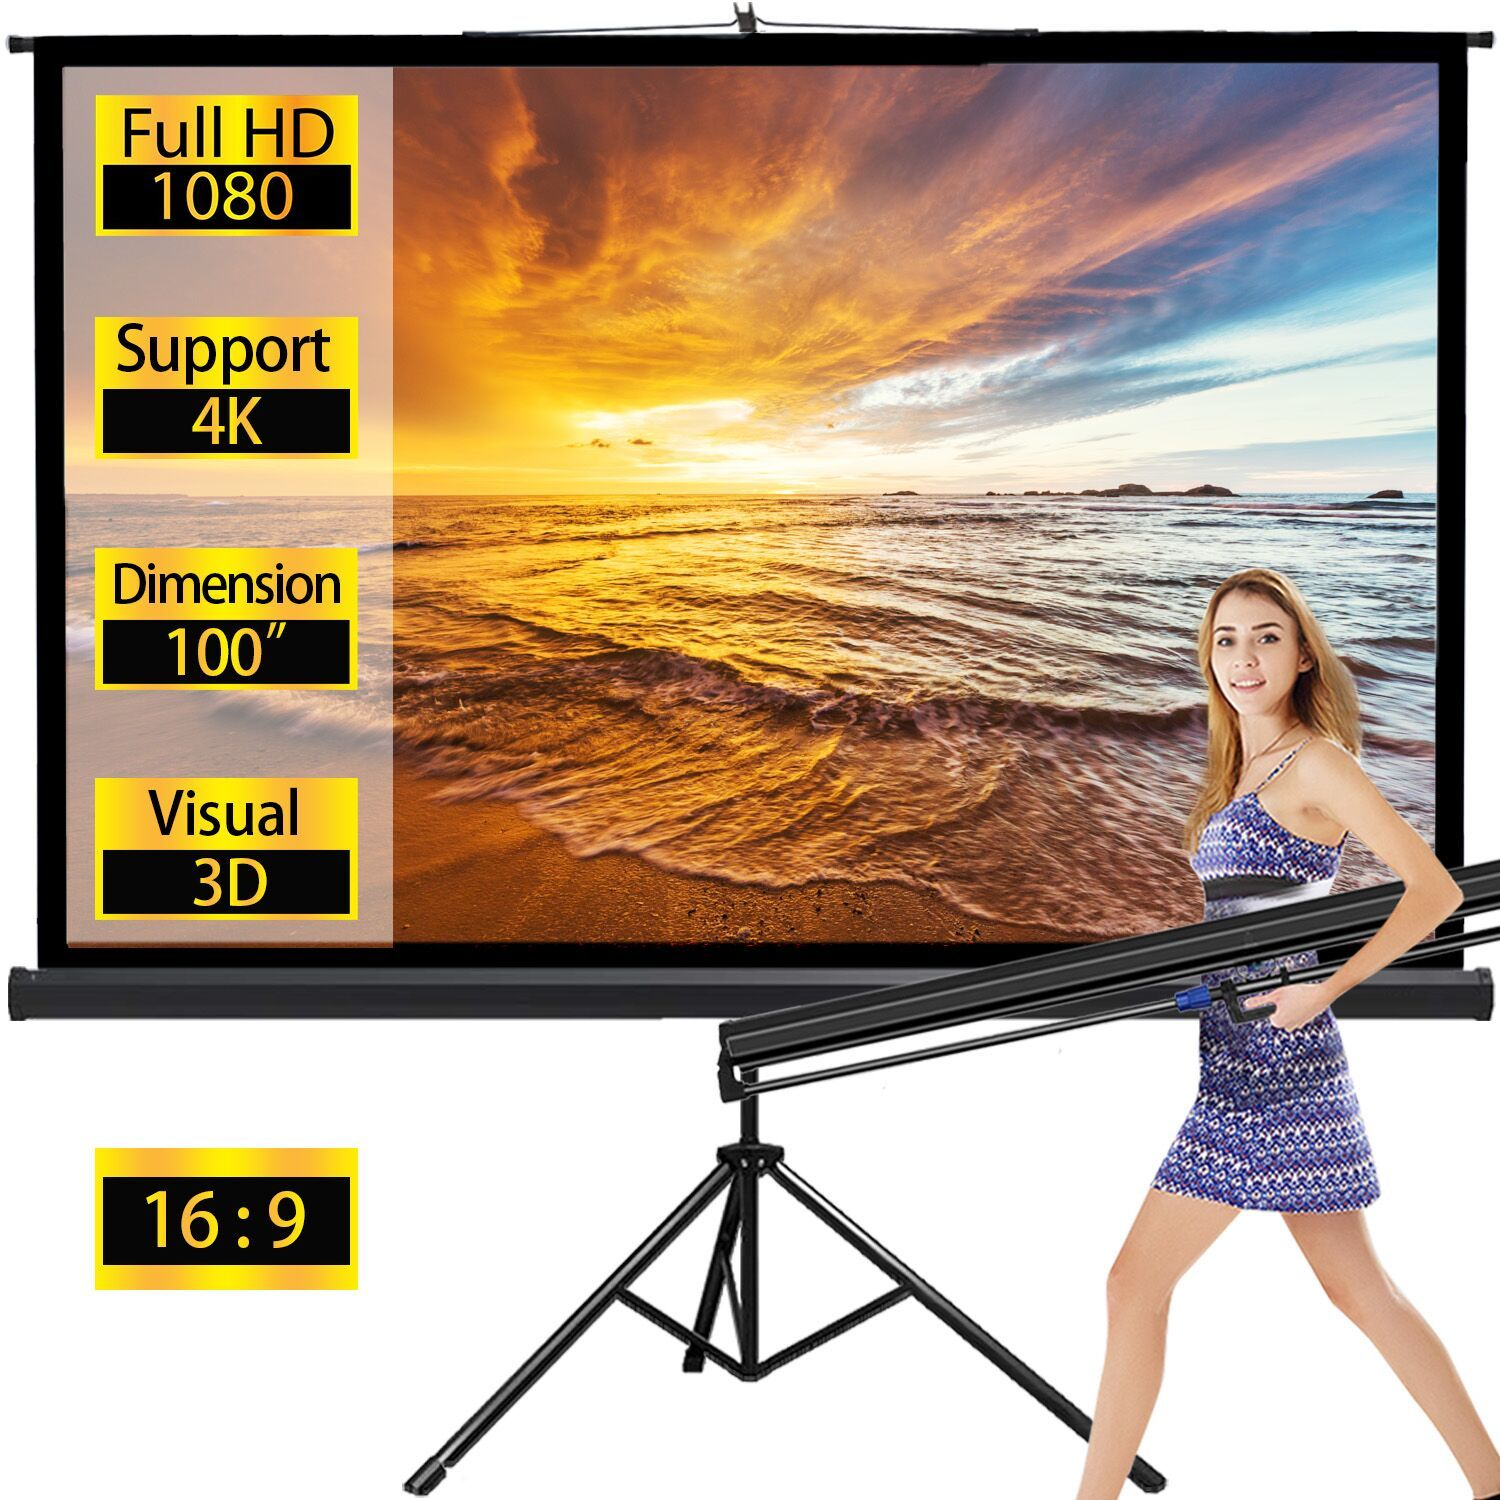 Projector Screen Tv Hd Large Movie Screen Theater Cinema Tripod Stand For Home Office Outdoor Indoor Folding Wedding Party Presentation 16 9 100 Inches Black In 2020 Outdoor Projection Screen Movie Screen Projector Screen